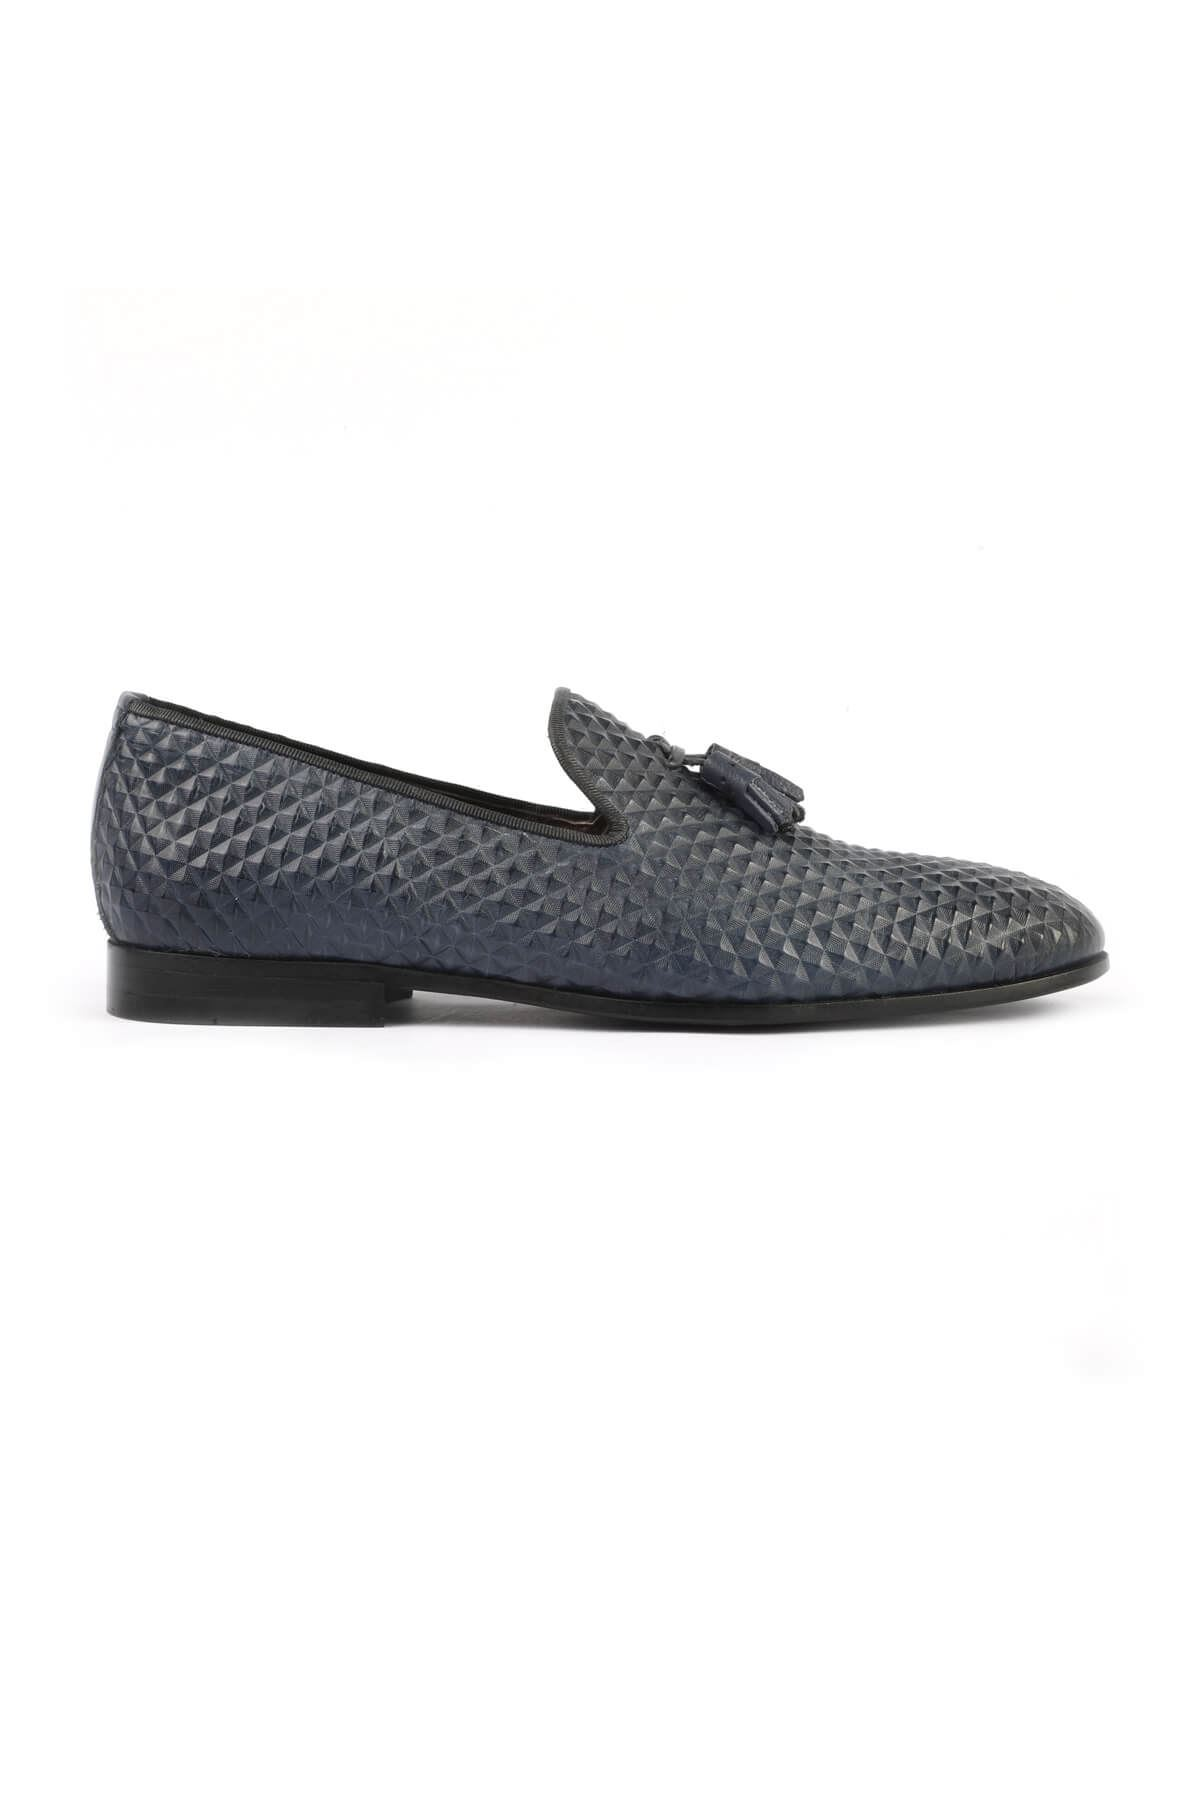 Libero 2830 Navy Blue Loafer Shoes